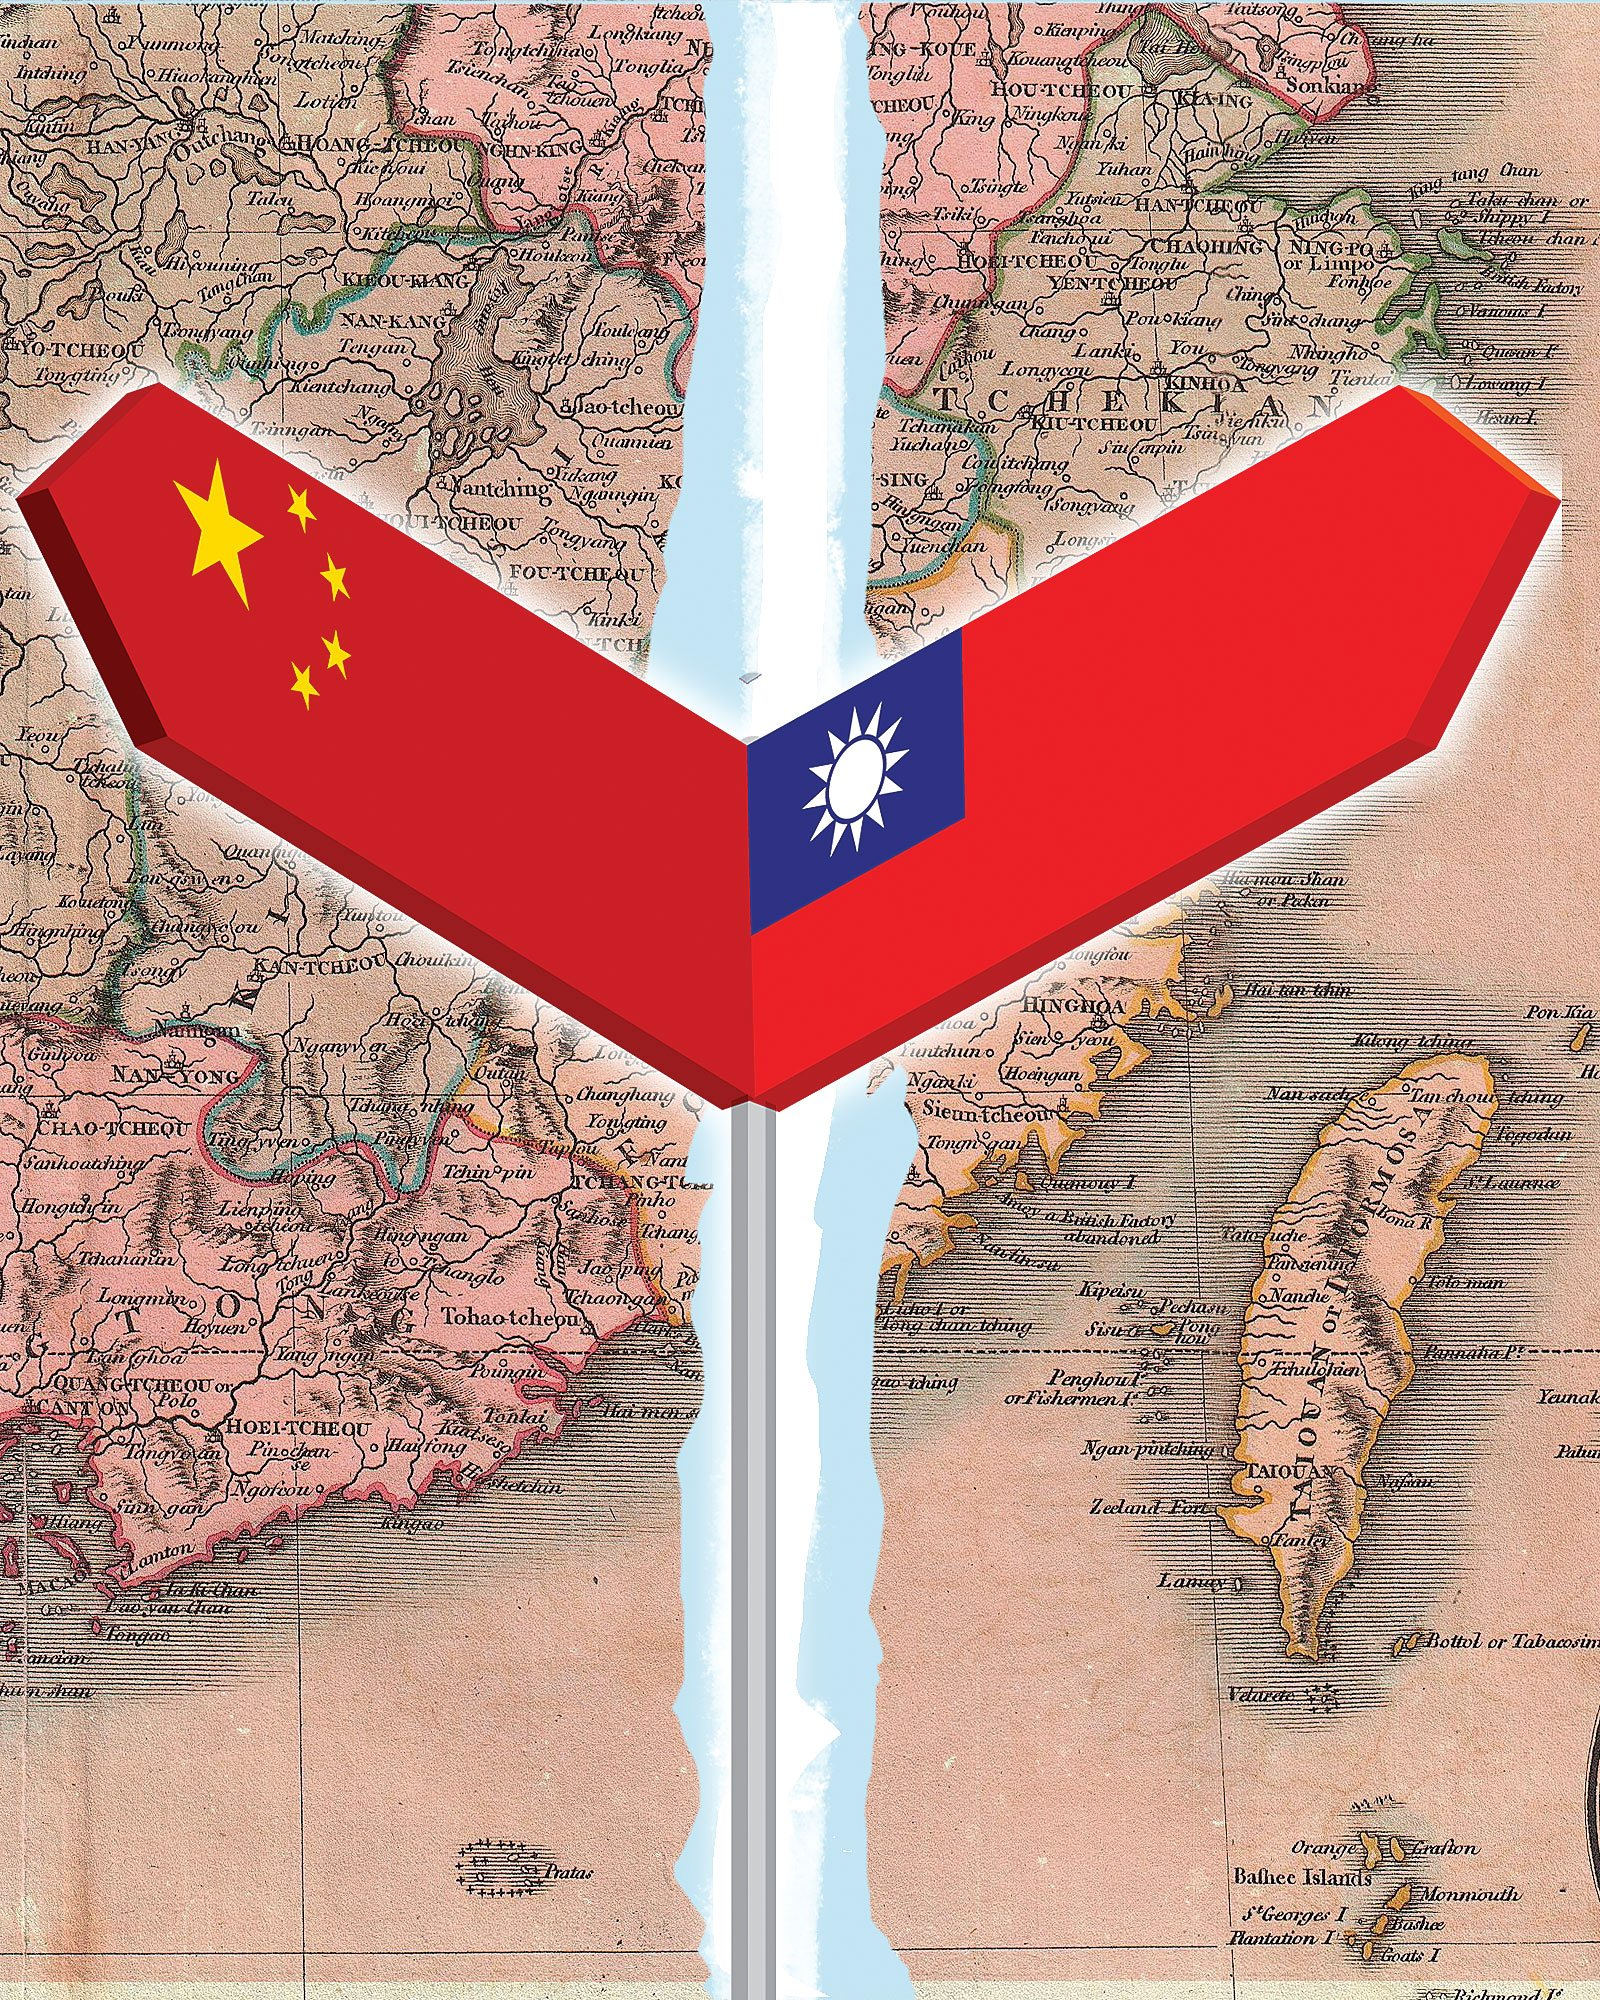 The people of Taiwan have a country and are dedicated to keeping it